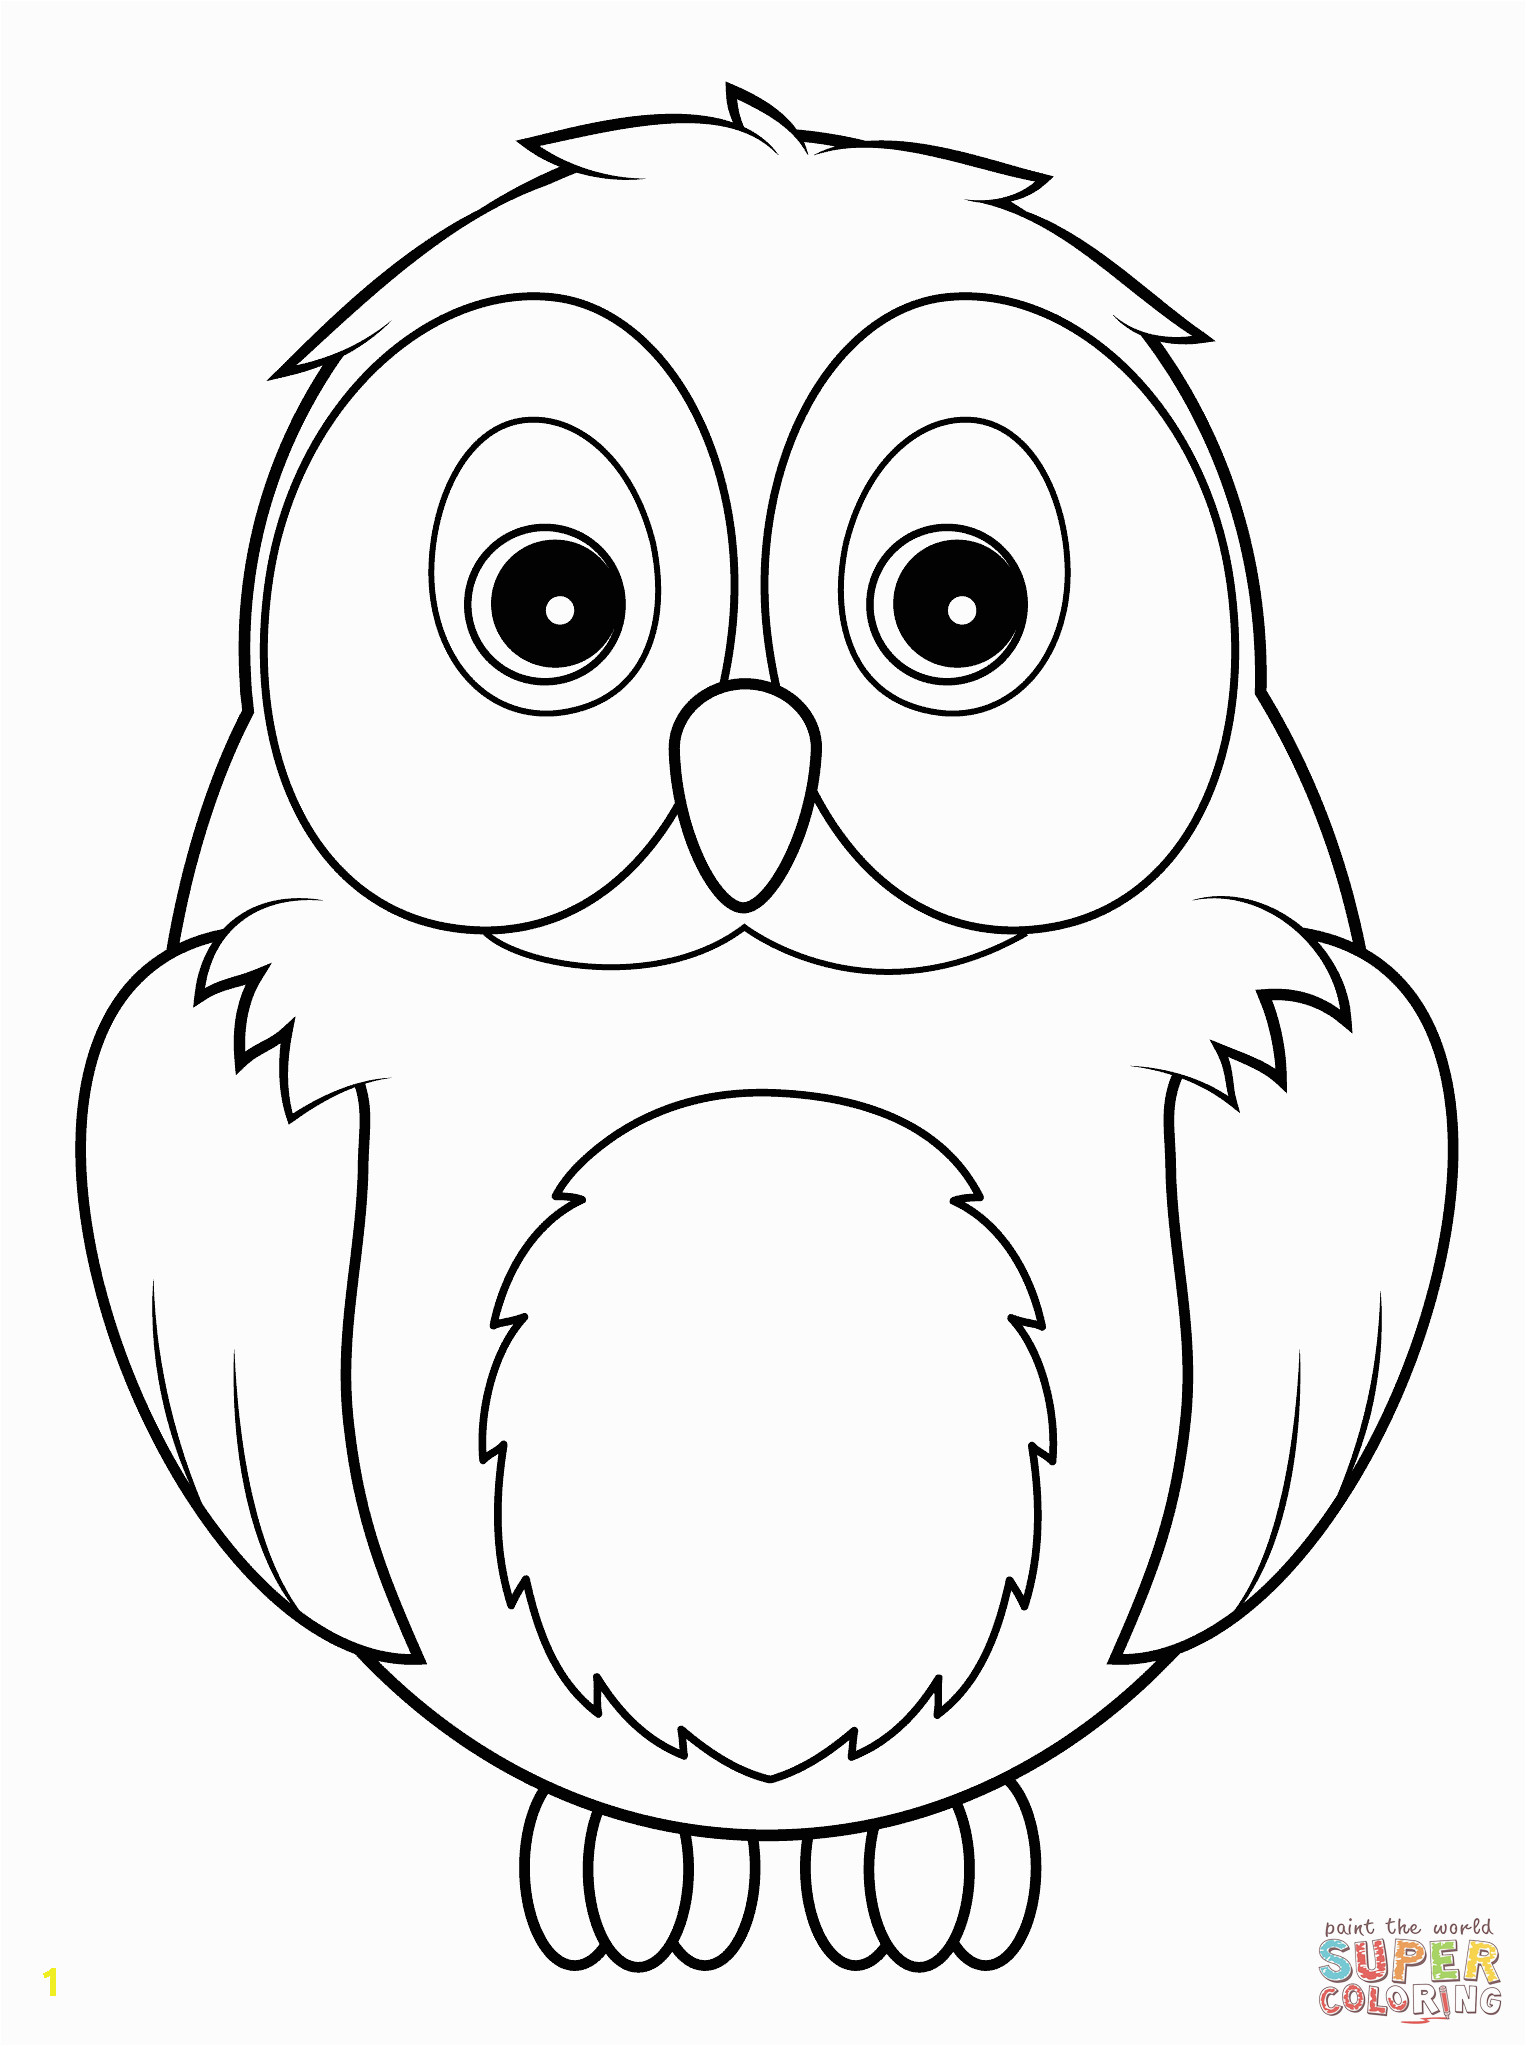 ea2245b7ccd cdfb0247ae282 owls coloring pages free coloring pages 1526 2046